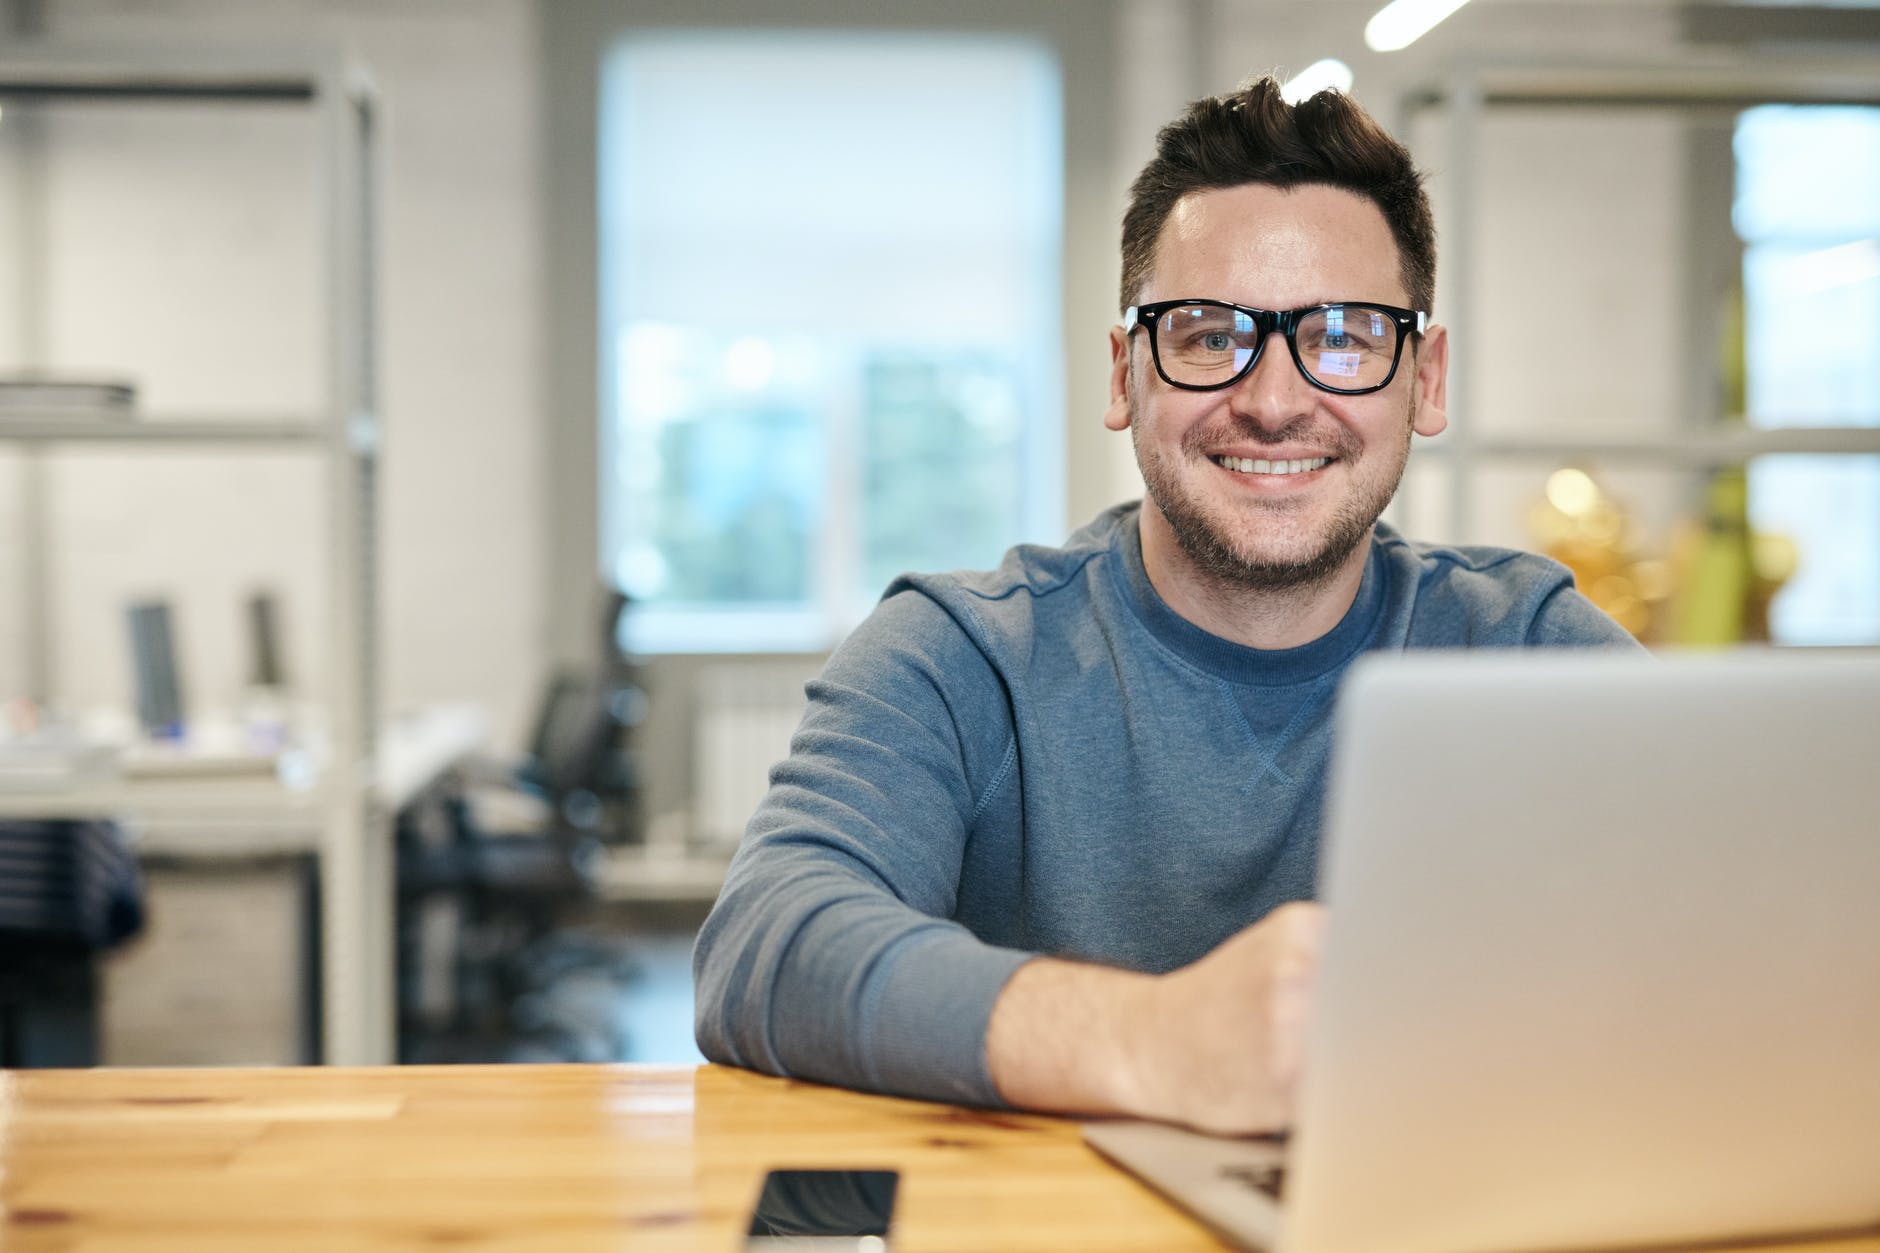 Smiling man with glasses sat down in front of laptop